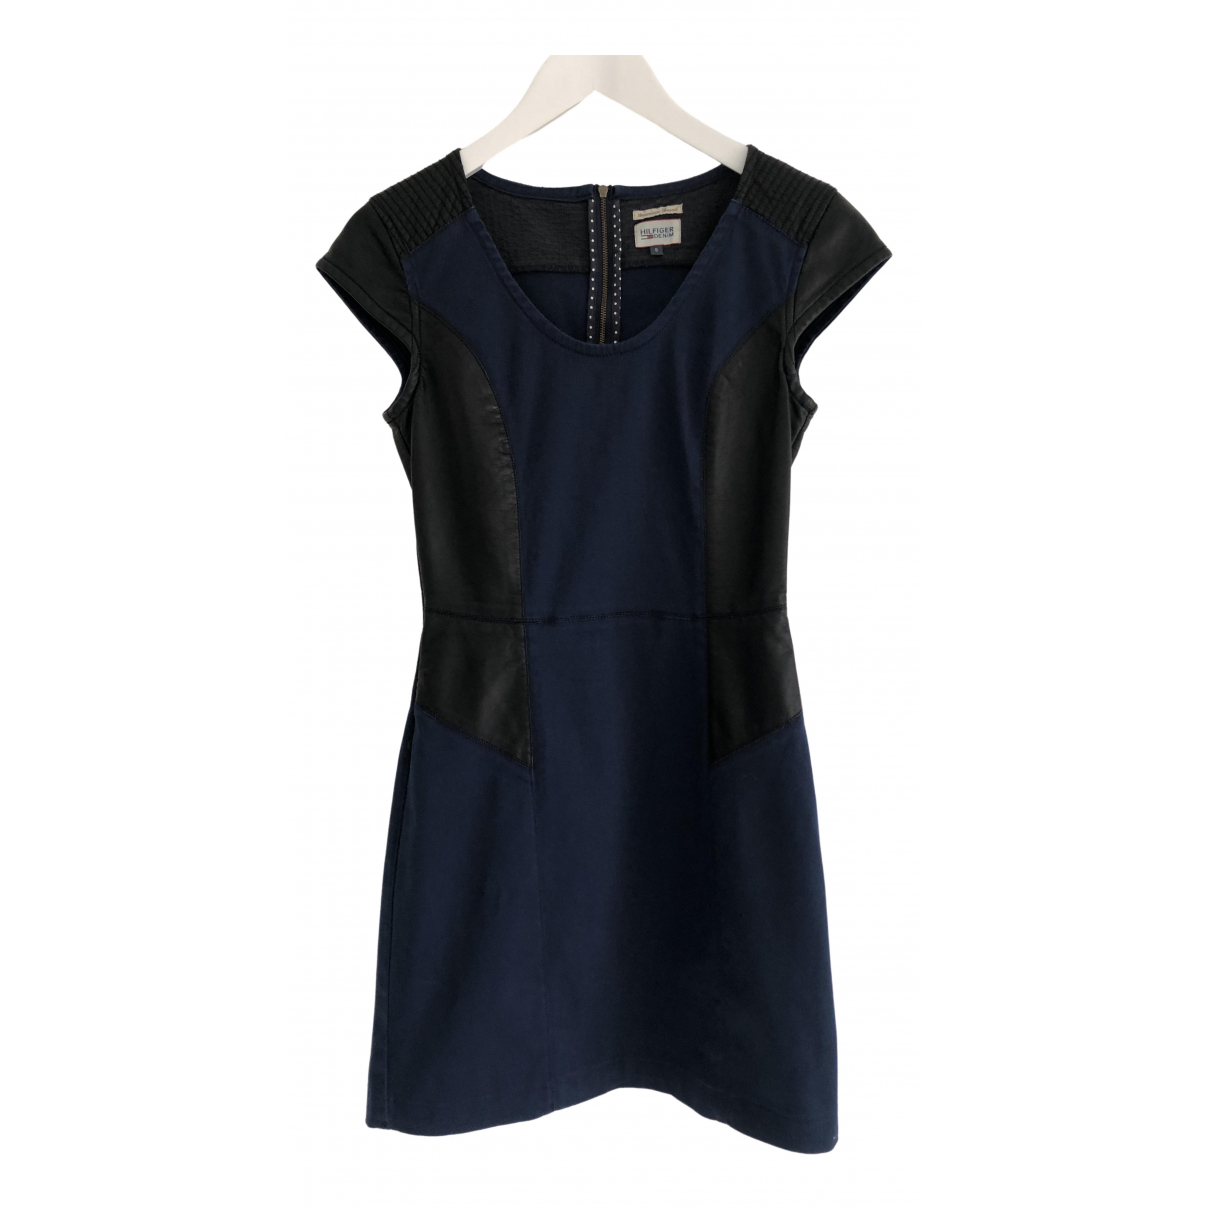 Tommy Hilfiger \N Blue Cotton dress for Women S International